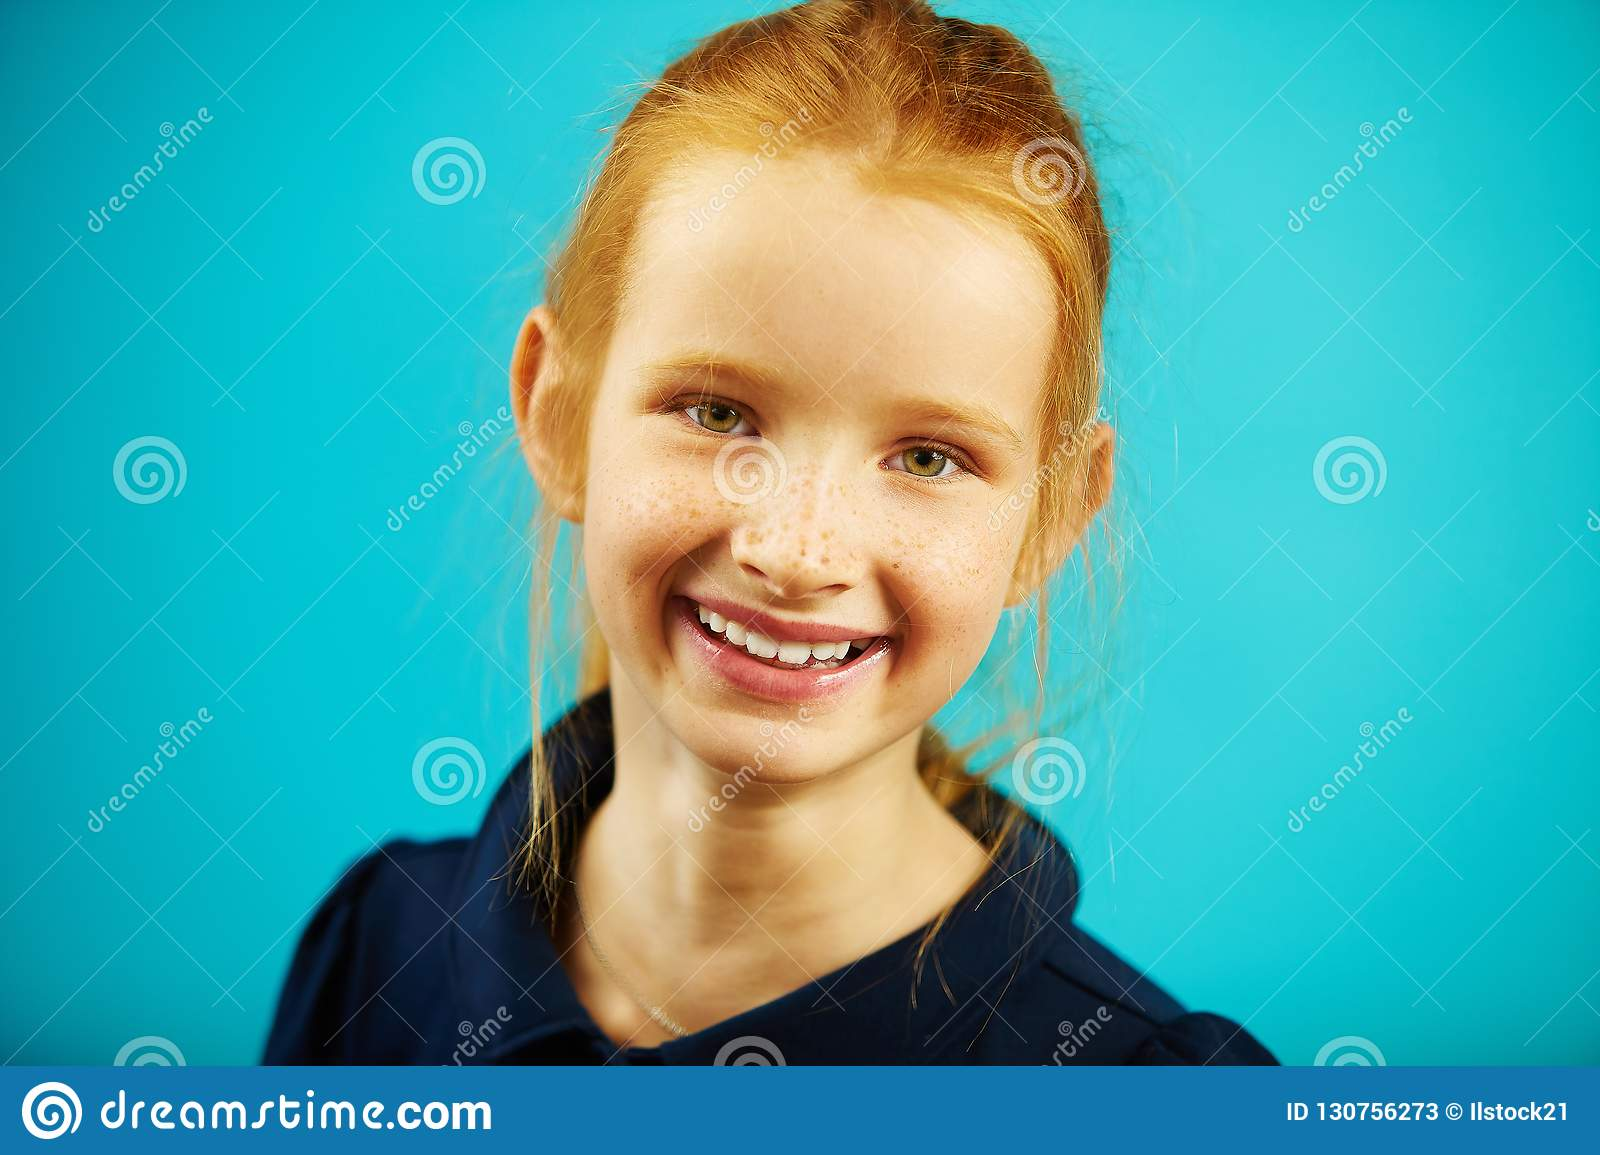 Portrait of cheerful redheaded school girl of seven years old on blue isolated background. Joyful child with genuine